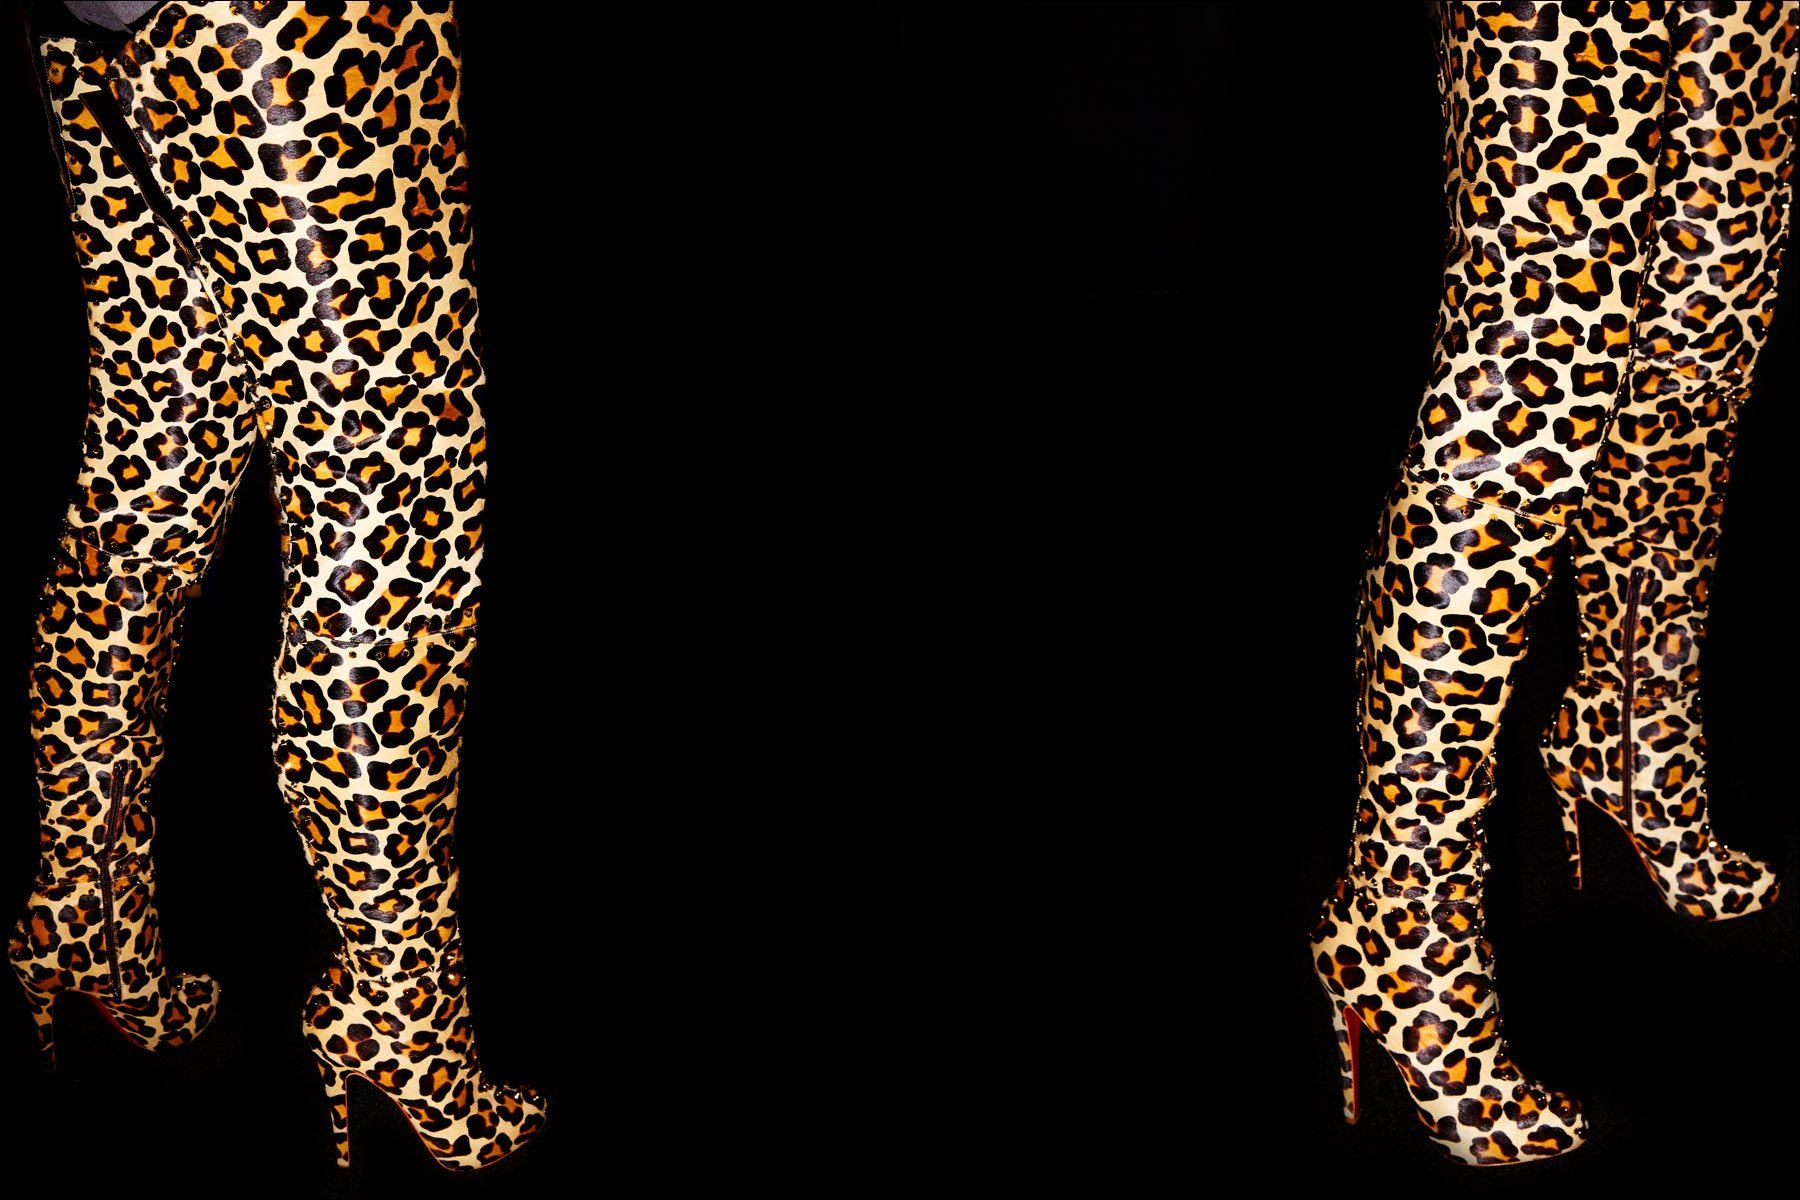 Leopard thigh-high Christian Louboutin boots, backstage at The Blonds S/S18 show. Photography by Alexander Thompson for Ponboy magazine NY.